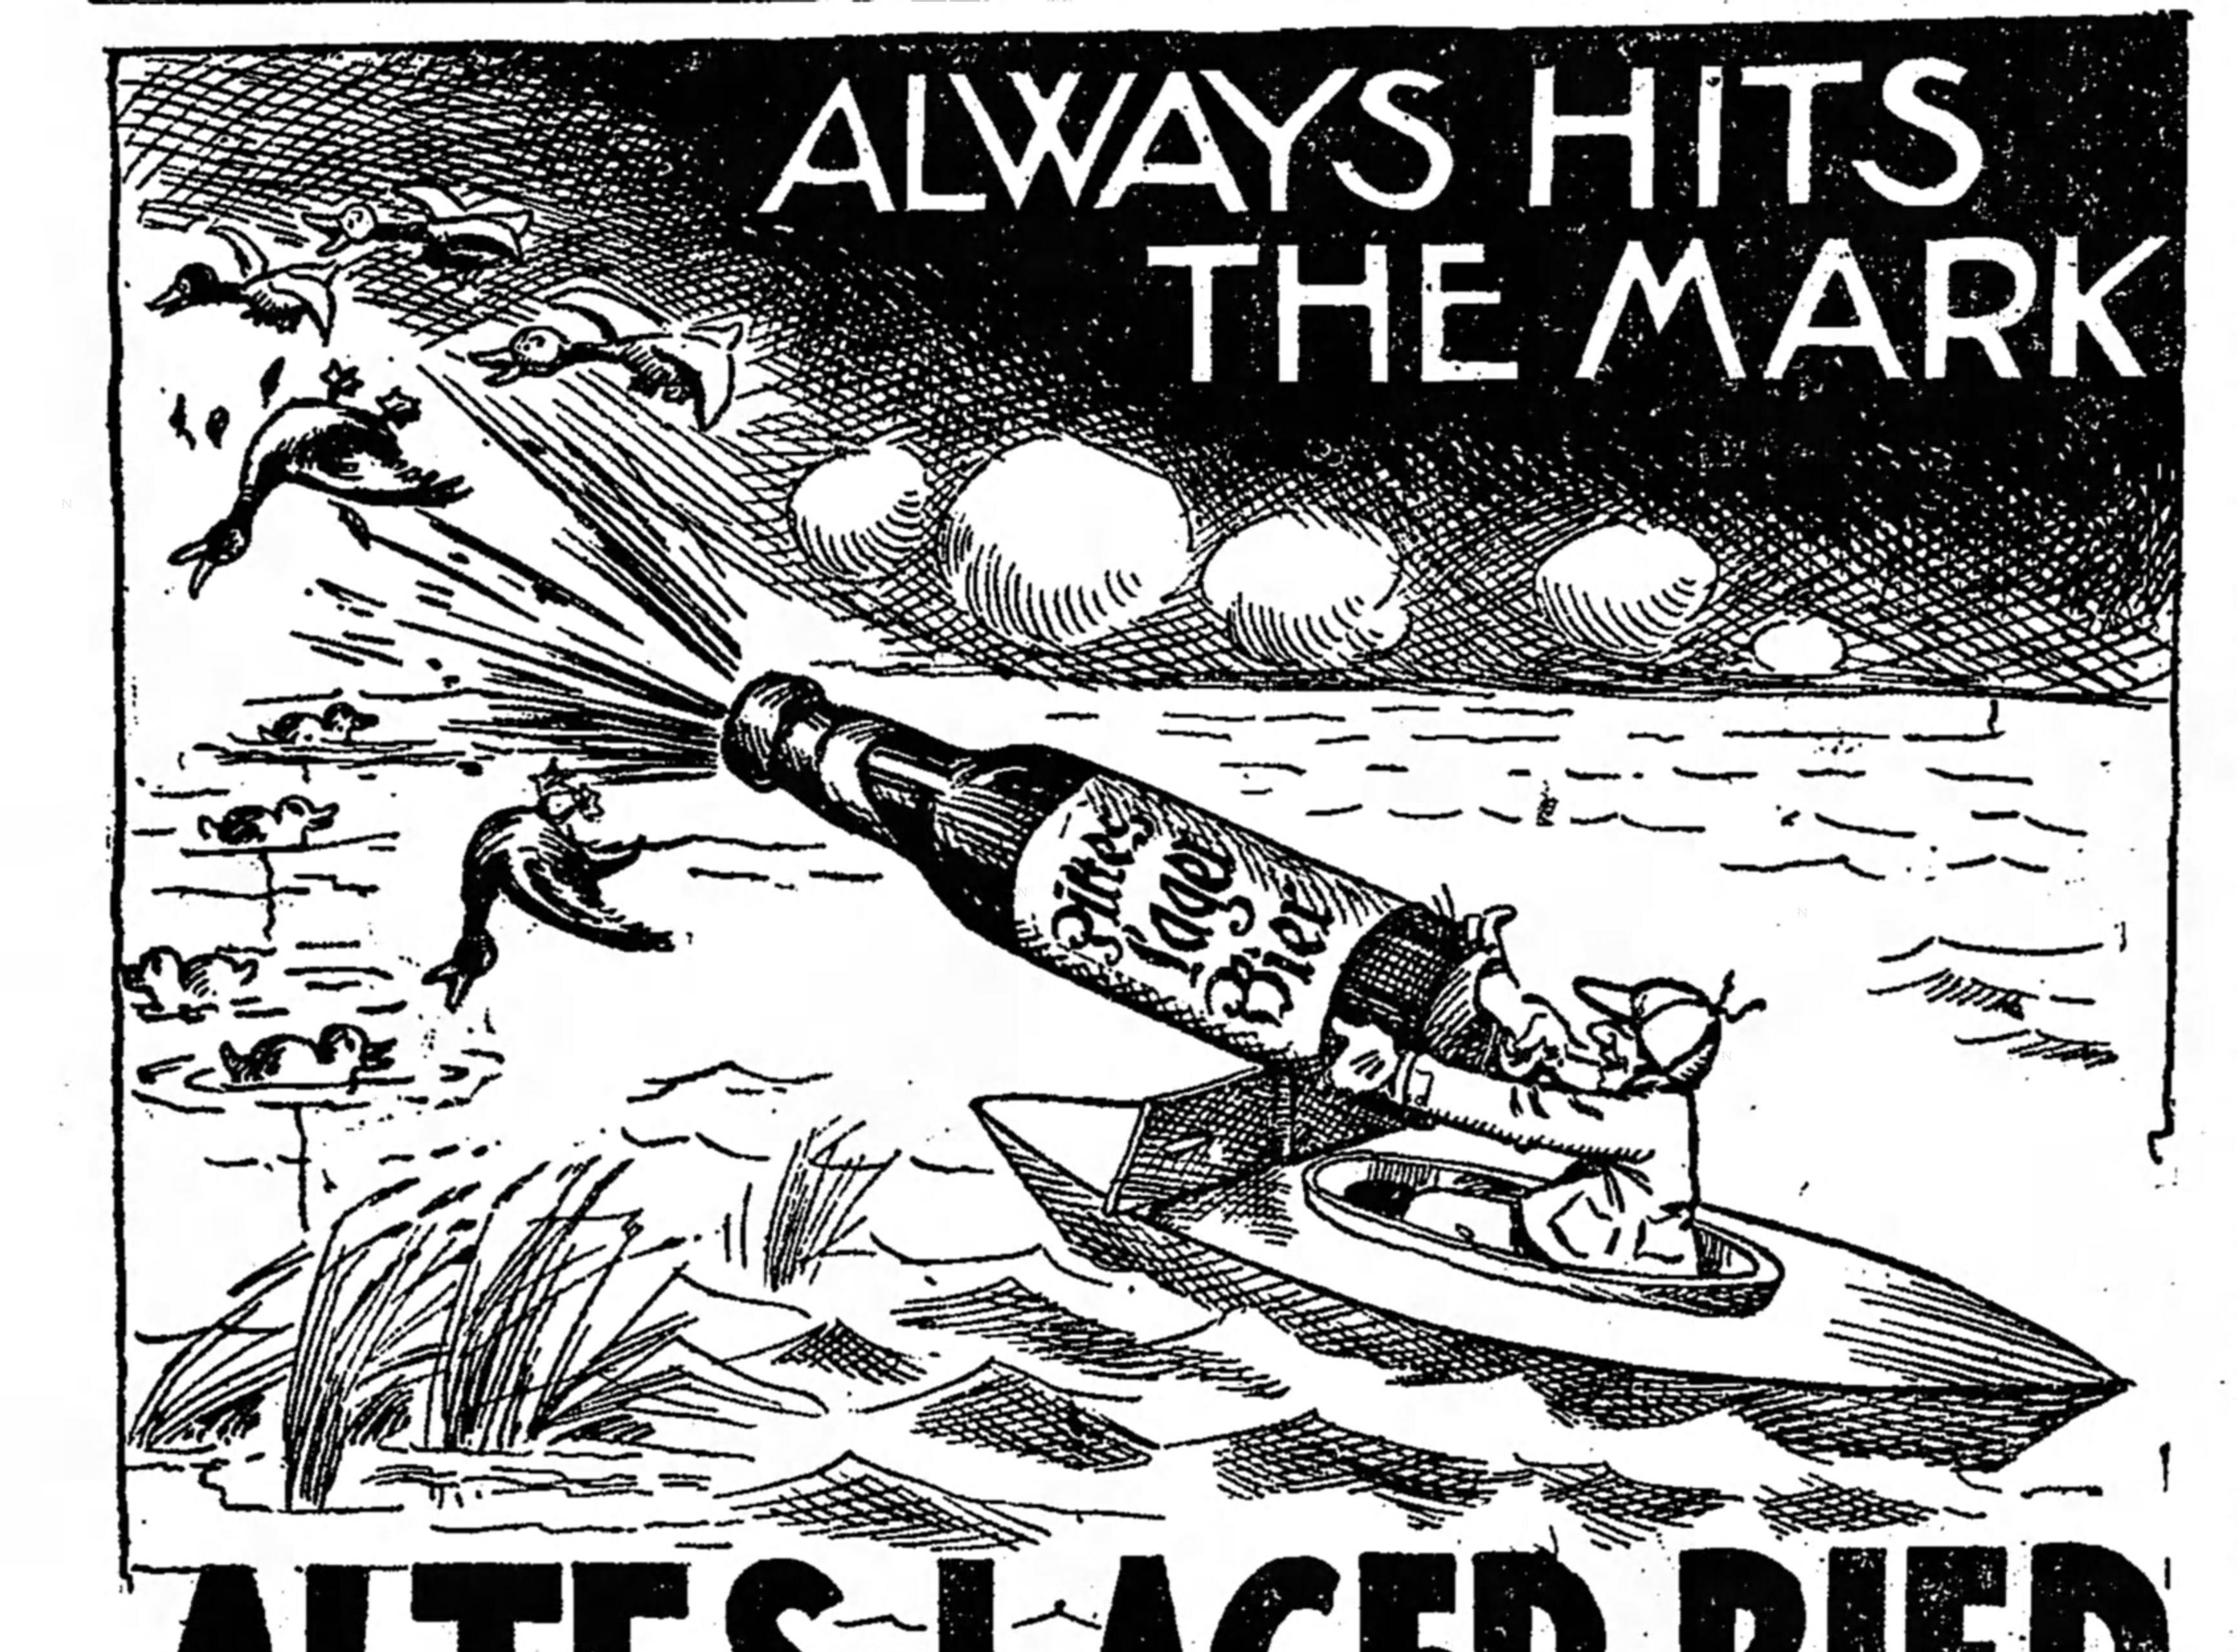 An ad for Altes Lager published in the Free Press on Oct. 12, 1910.